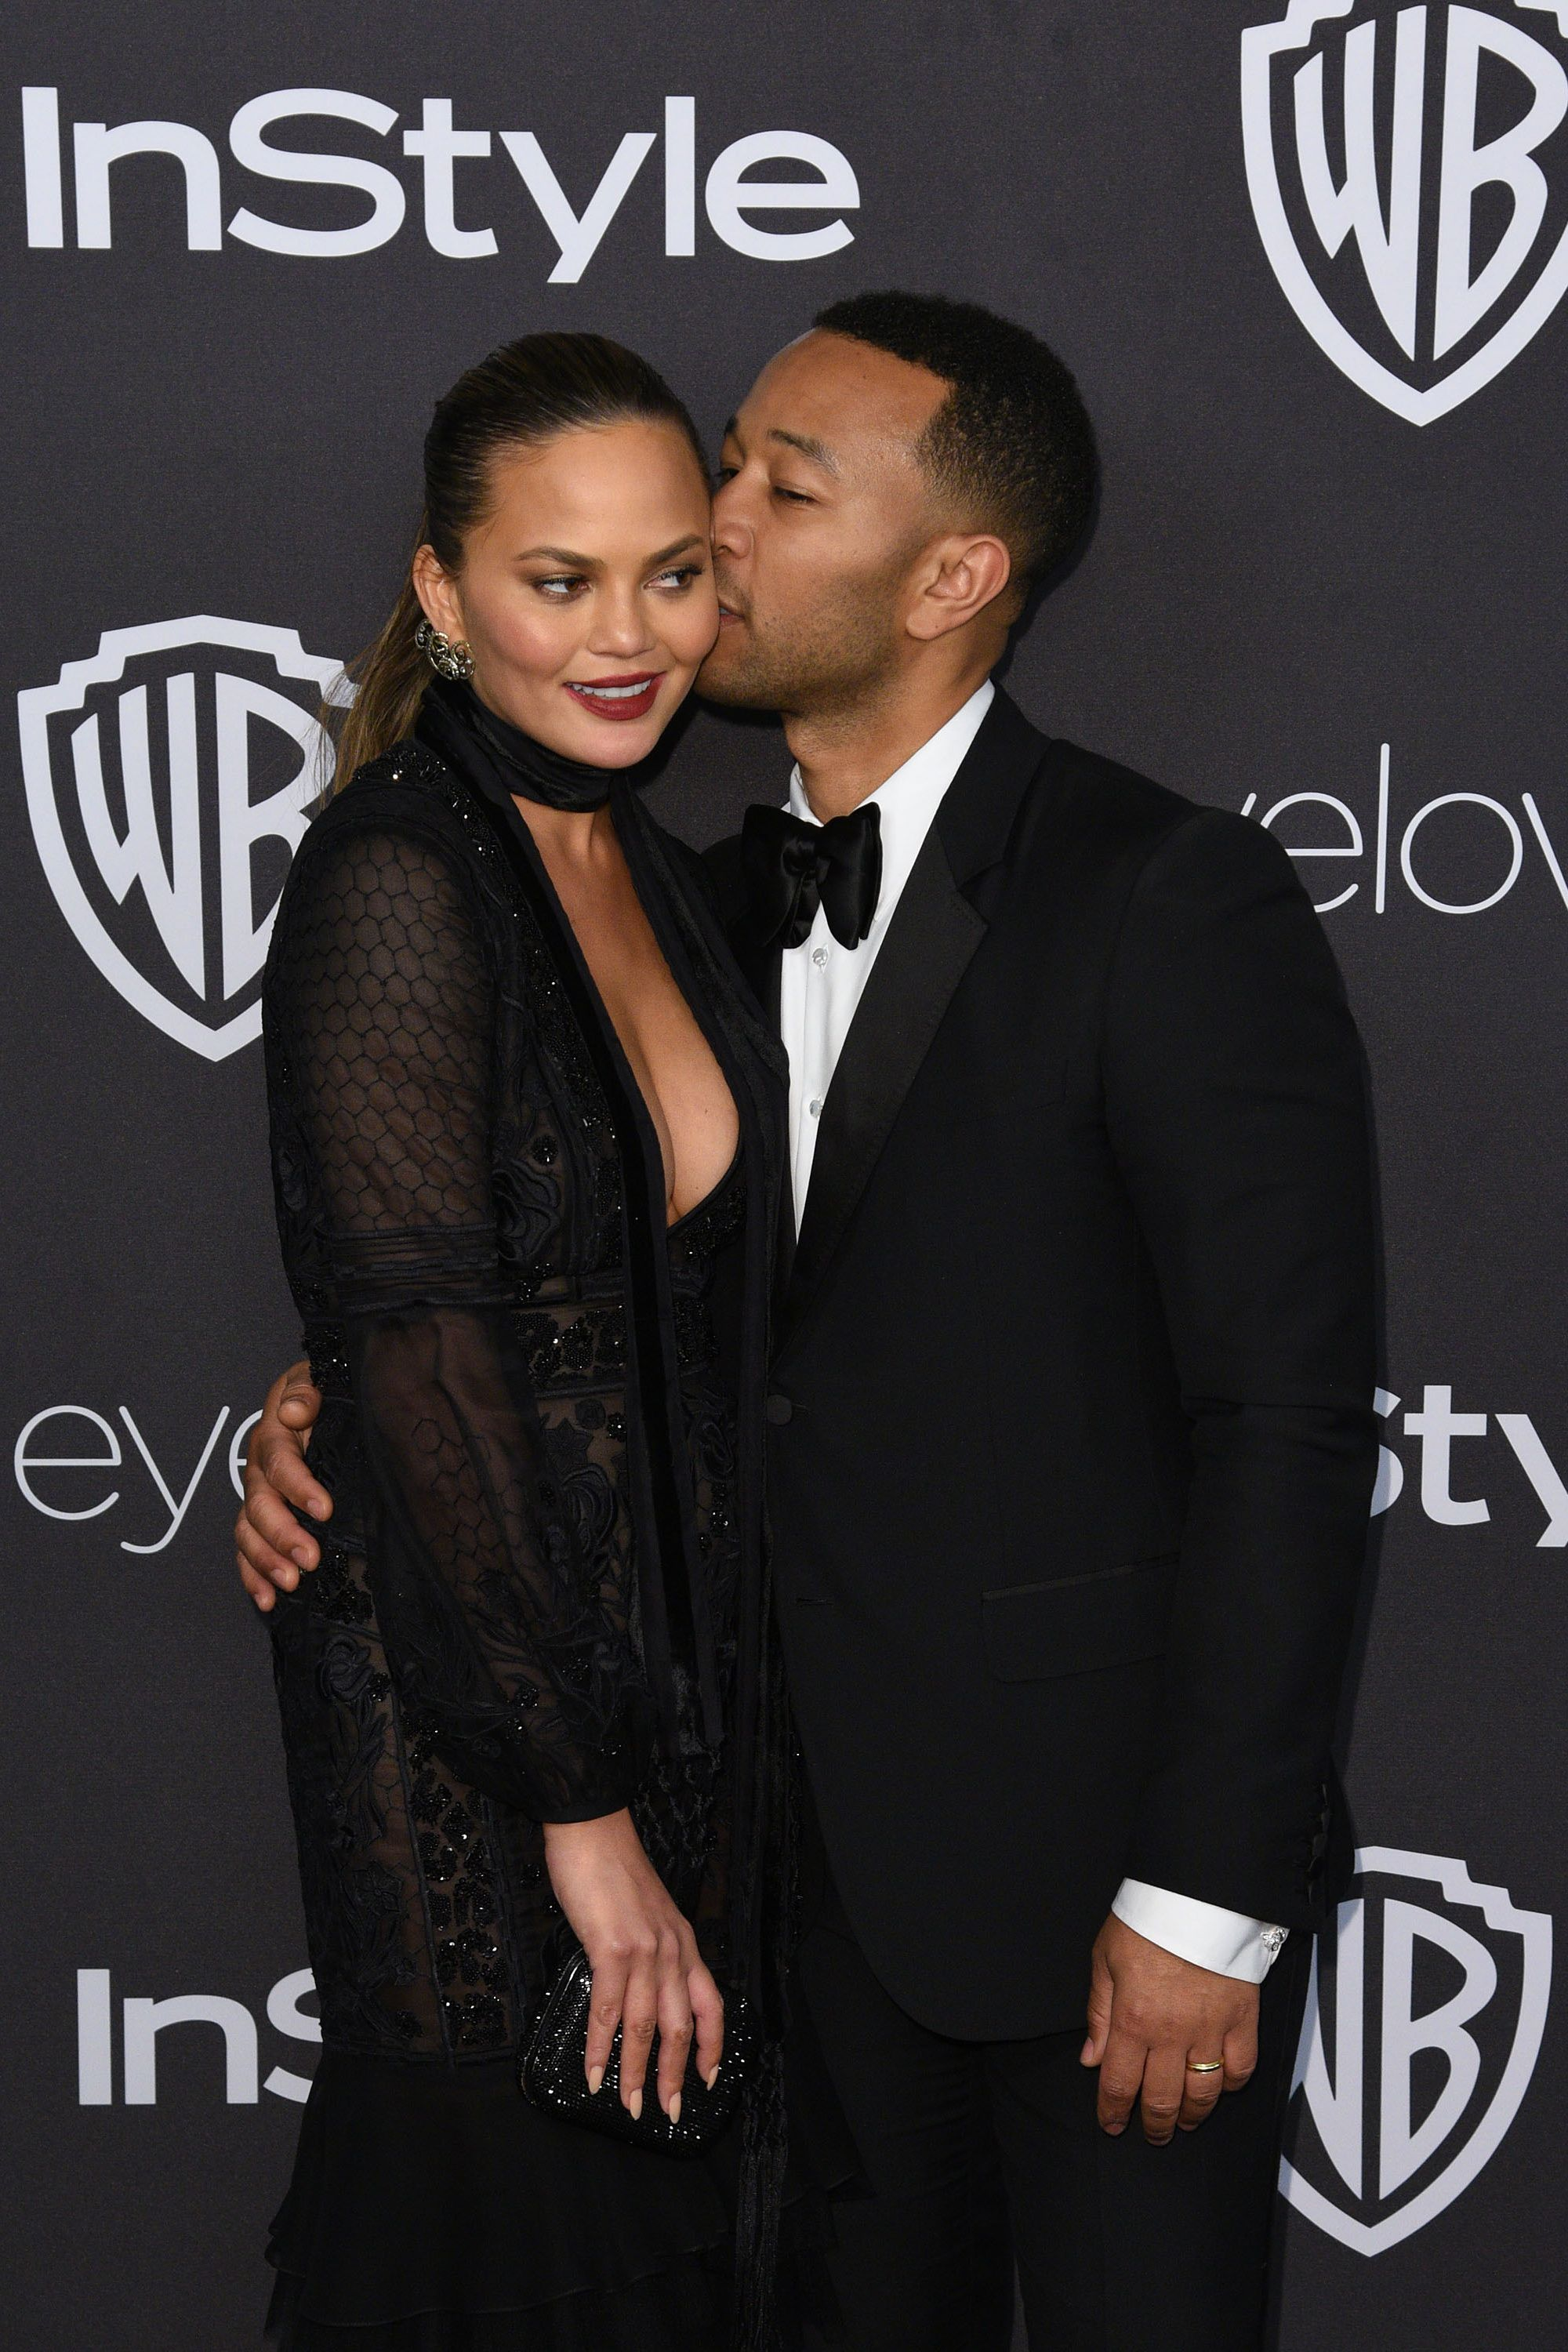 "<p><strong data-redactor-tag=""strong"" data-verified=""redactor"">Wife:</strong> Chrissy Teigen</p><p><strong data-redactor-tag=""strong"" data-verified=""redactor"">Married since: </strong>2013 (together since 2007)</p><p>Legend <a href=""http://www.cbsnews.com/news/john-legend-talks-wife-chrissy-teigen-as-inspiration-friend-kanye-west-and-the-state-of-rb/"" target=""_blank"" data-tracking-id=""recirc-text-link"">on the first time Teigen heard ""All of Me,""</a> the song he wrote for her: ""She loved it. And she cried when she first heard it. I sang it to her. I just whispered it to her when we were at home. I wasn't even at the piano. I was just, like, excited about it. I didn't even have the recording yet. […] It was late and I was like, 'You just have to hear this song' And I sang it to her and she just started crying.""<span class=""redactor-invisible-space"" data-verified=""redactor"" data-redactor-tag=""span"" data-redactor-class=""redactor-invisible-space""></span></p>"